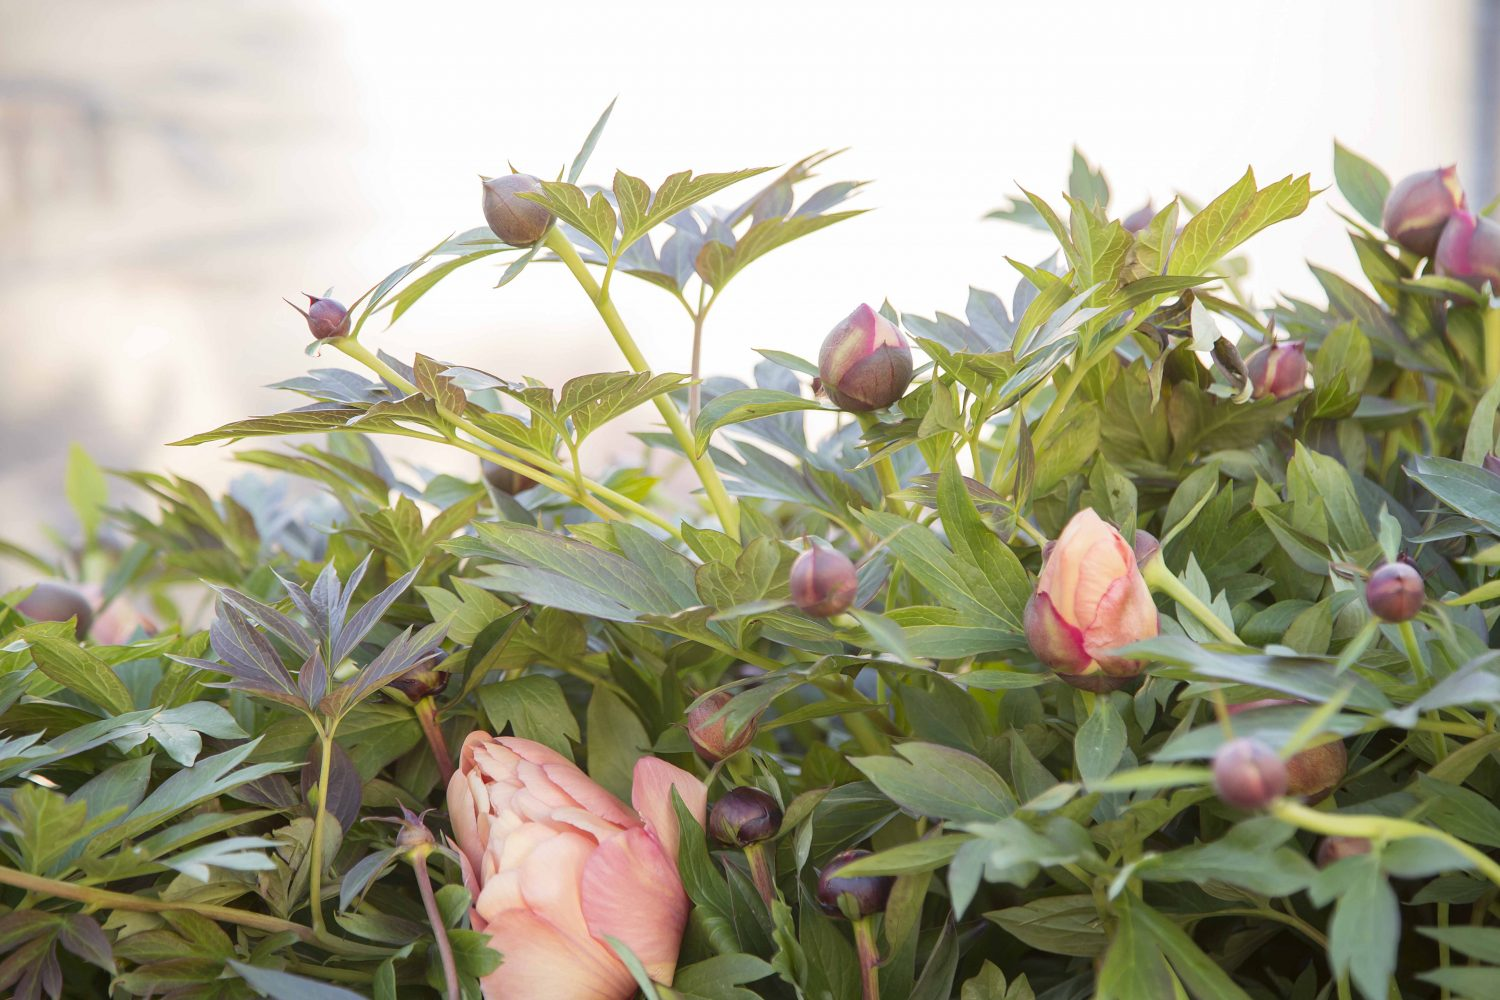 Peonies with flower buds